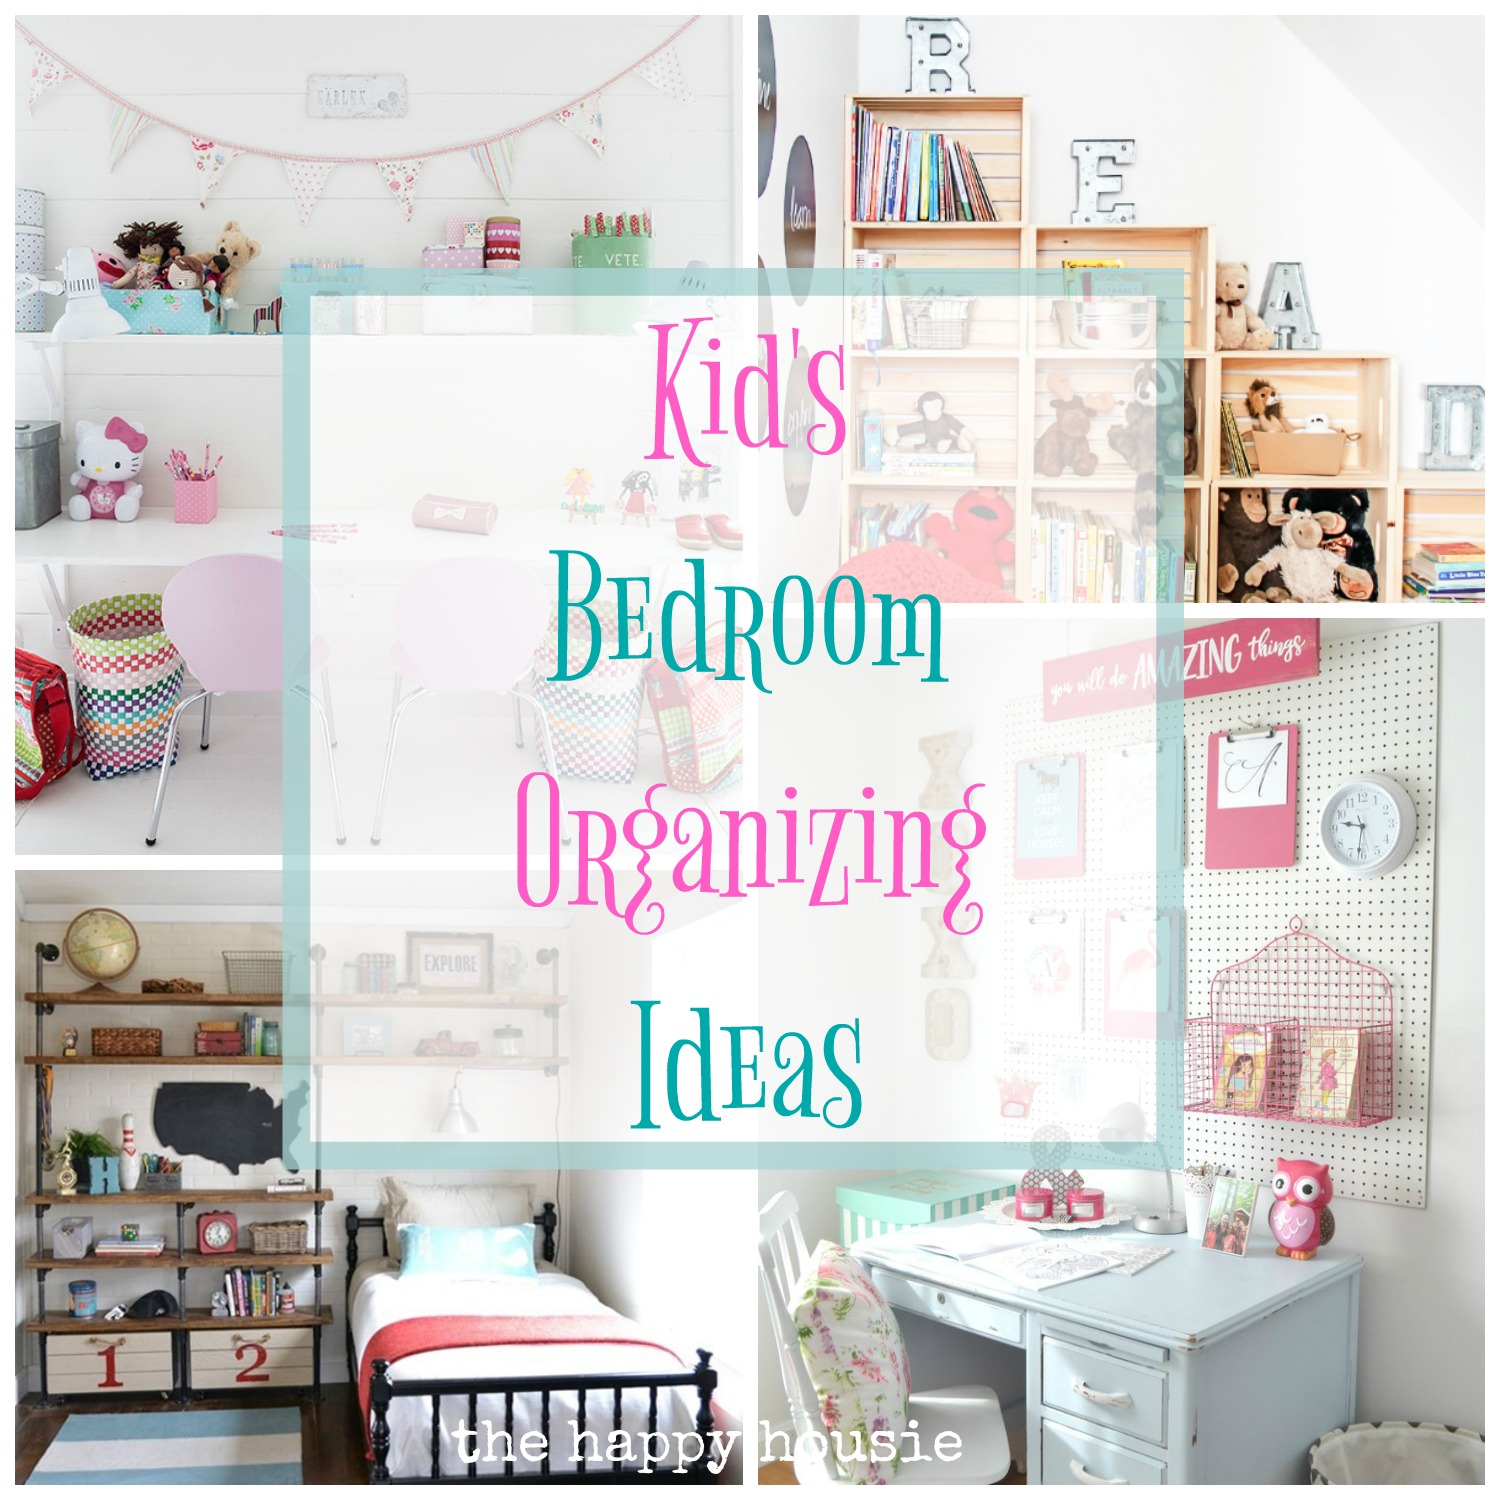 10 Fabulous Organizing Ideas For Kids Rooms fantastic ideas for organizing kids bedrooms the happy housie 2021